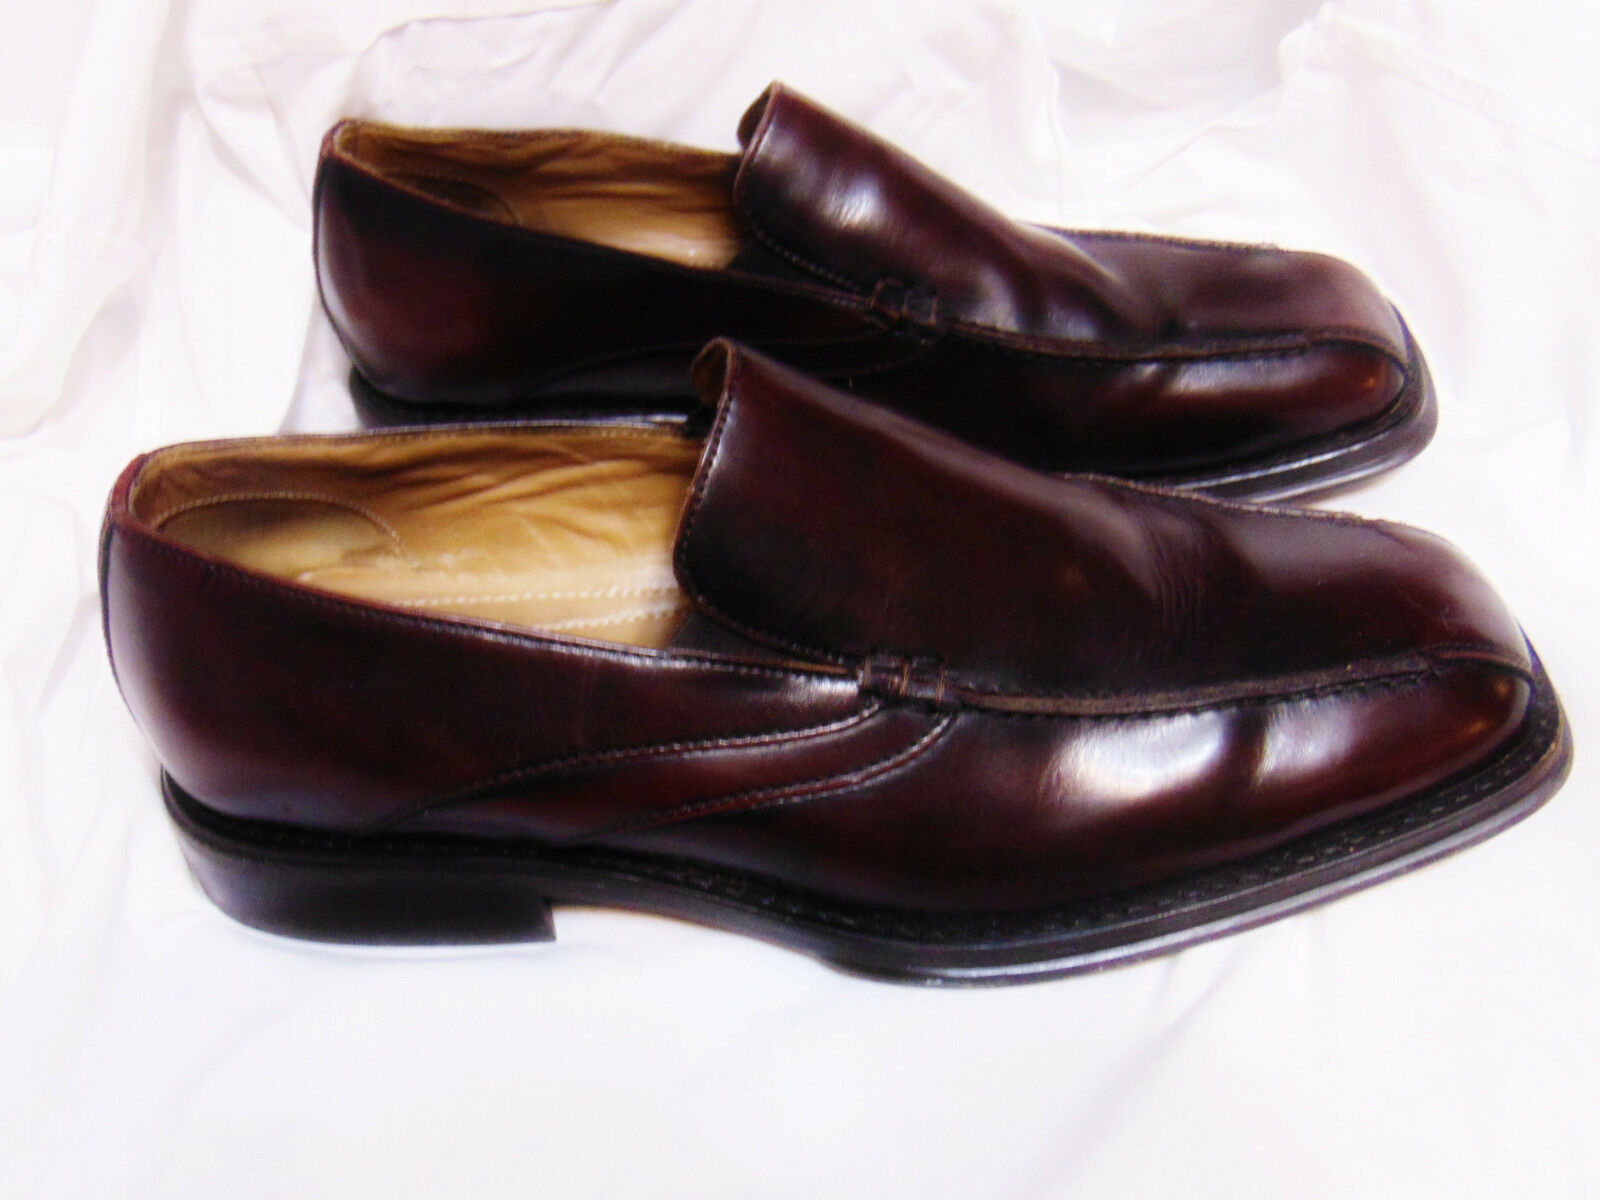 FRANCO FORTINI Mens Loafer Style Shoes 11.5 M Dark Brown Slip On Leather 321032